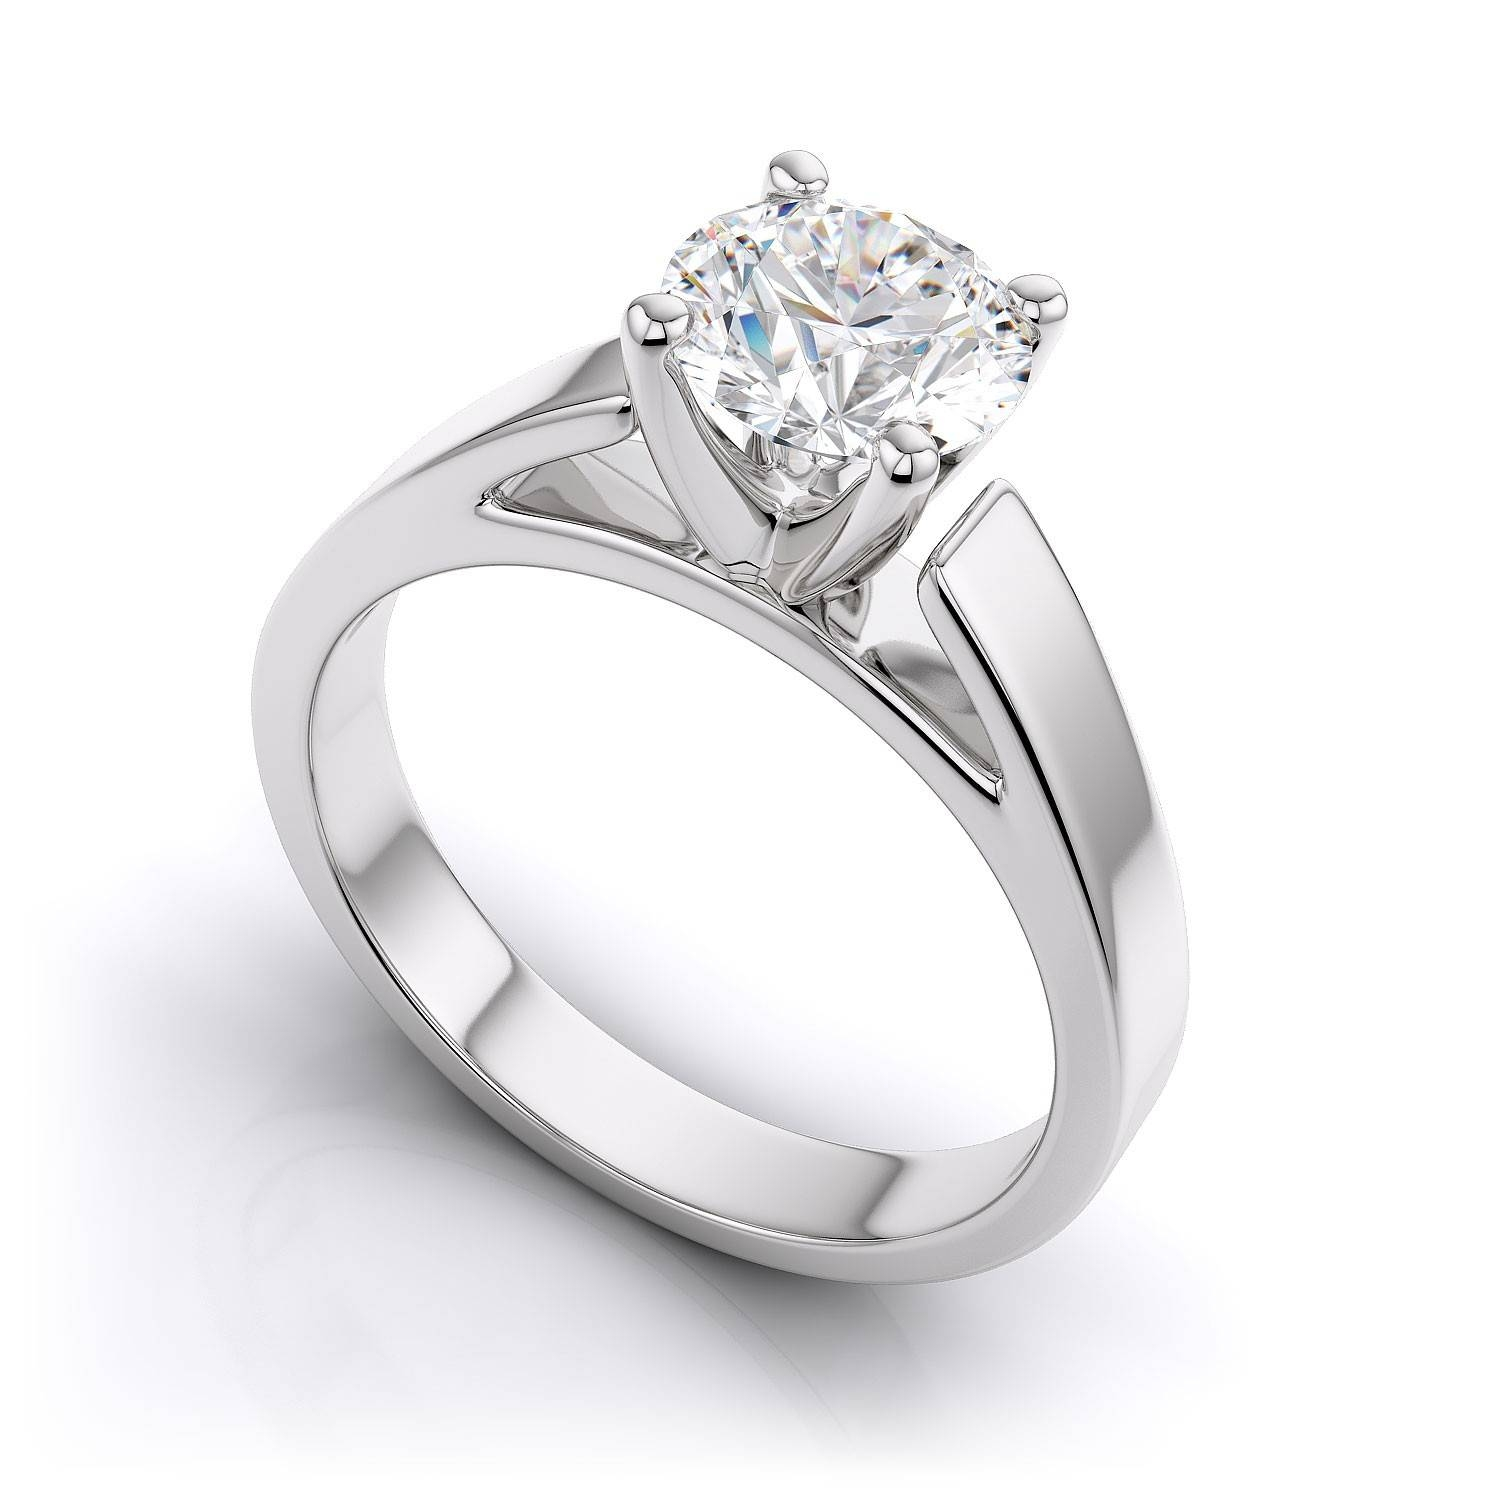 Tapered Cathedral Solitaire Engagement Ring – 14K White Gold Inside Diamond Wedding Rings Settings (View 14 of 15)